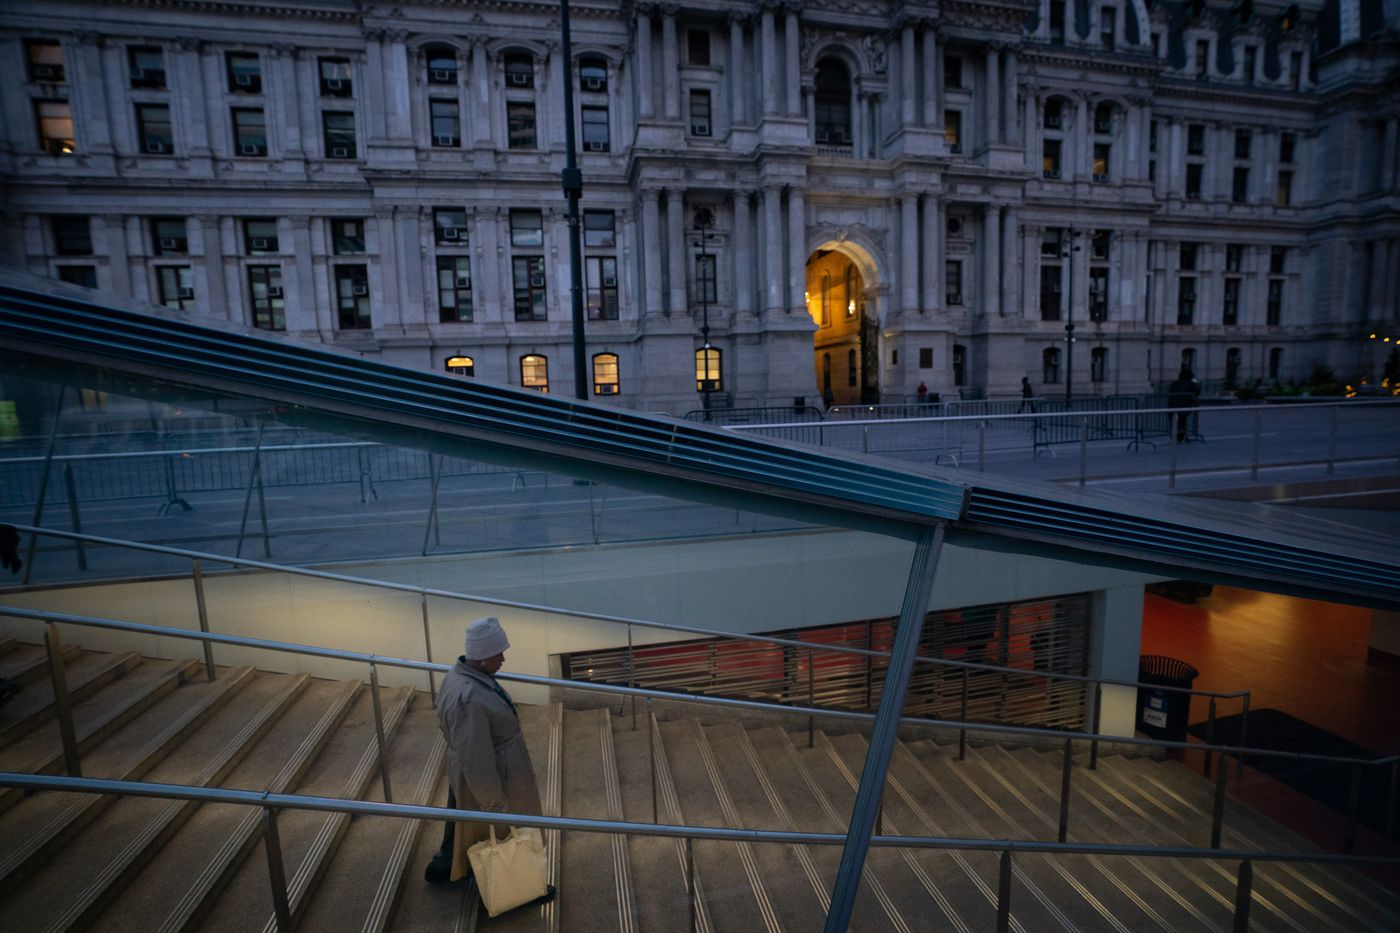 A view of a subway entrance located in front of City Hall in Dilworth Plaza, around 7am in Philadelphia, March 16, 2020.